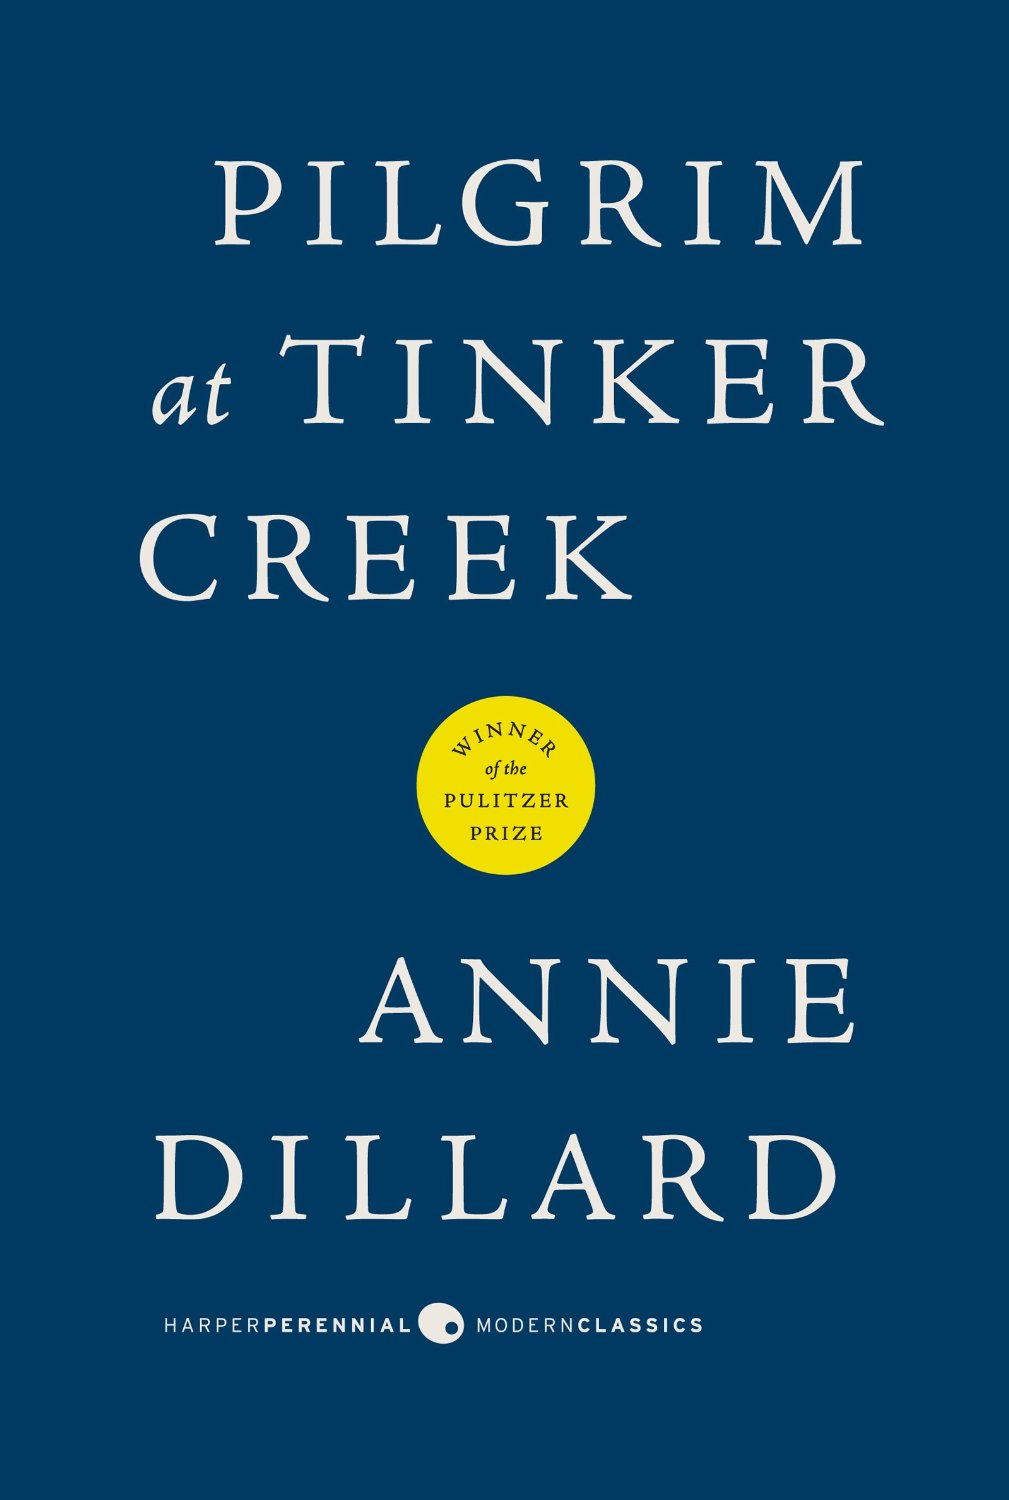 Annie Dillard on How to Live with Mystery, the Two Ways of Looking, and the Secret of Seeing